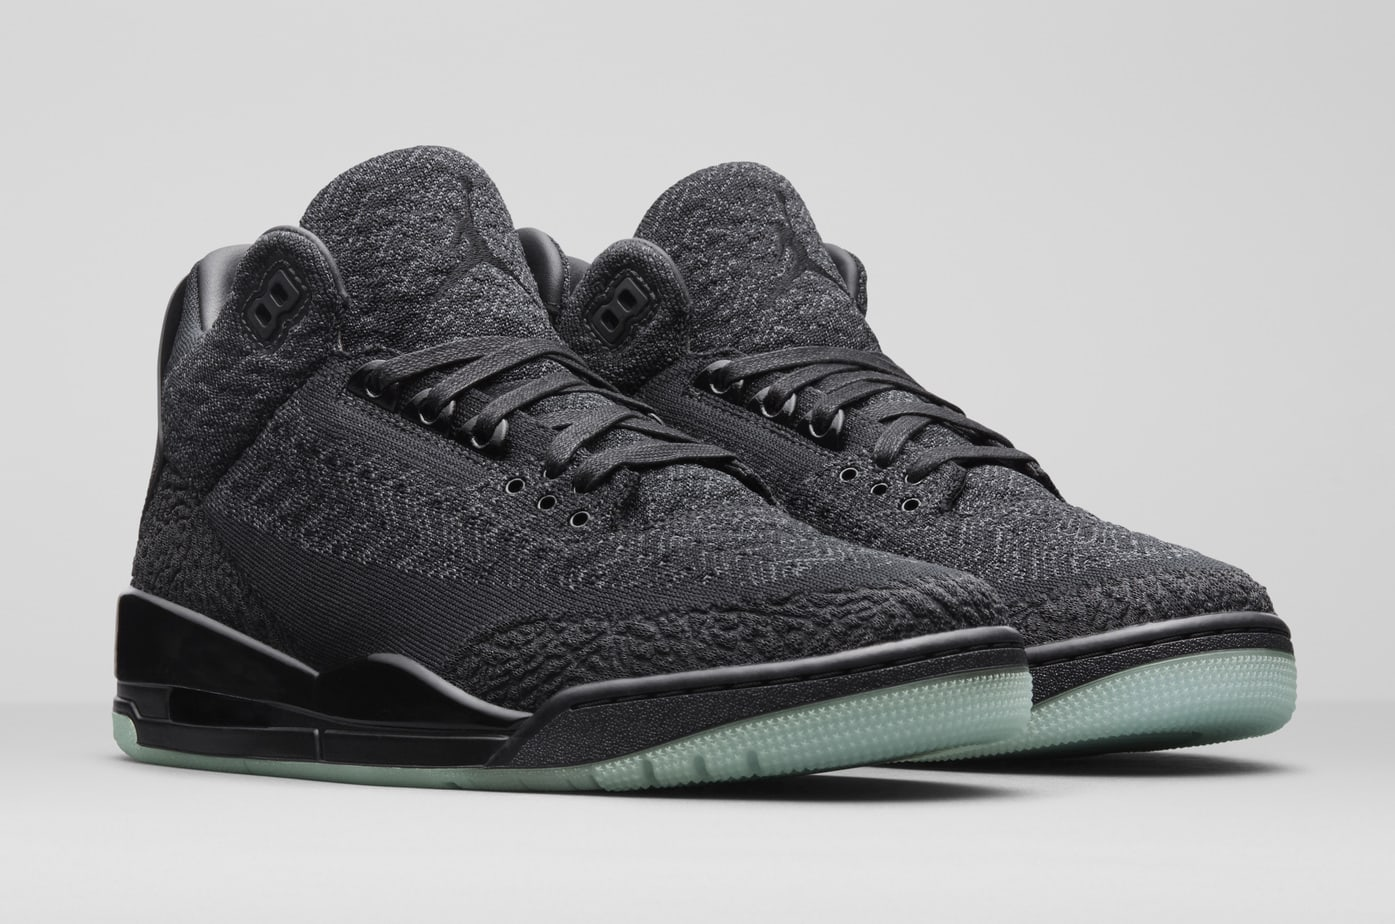 """low priced 971bd 87f58 Air Jordan 3 Flyknit """"Anthracite"""" Release Date  August 18th, 2018. Price    220. Color  Black Anthracite-Black Style Code  AQ1005-001"""